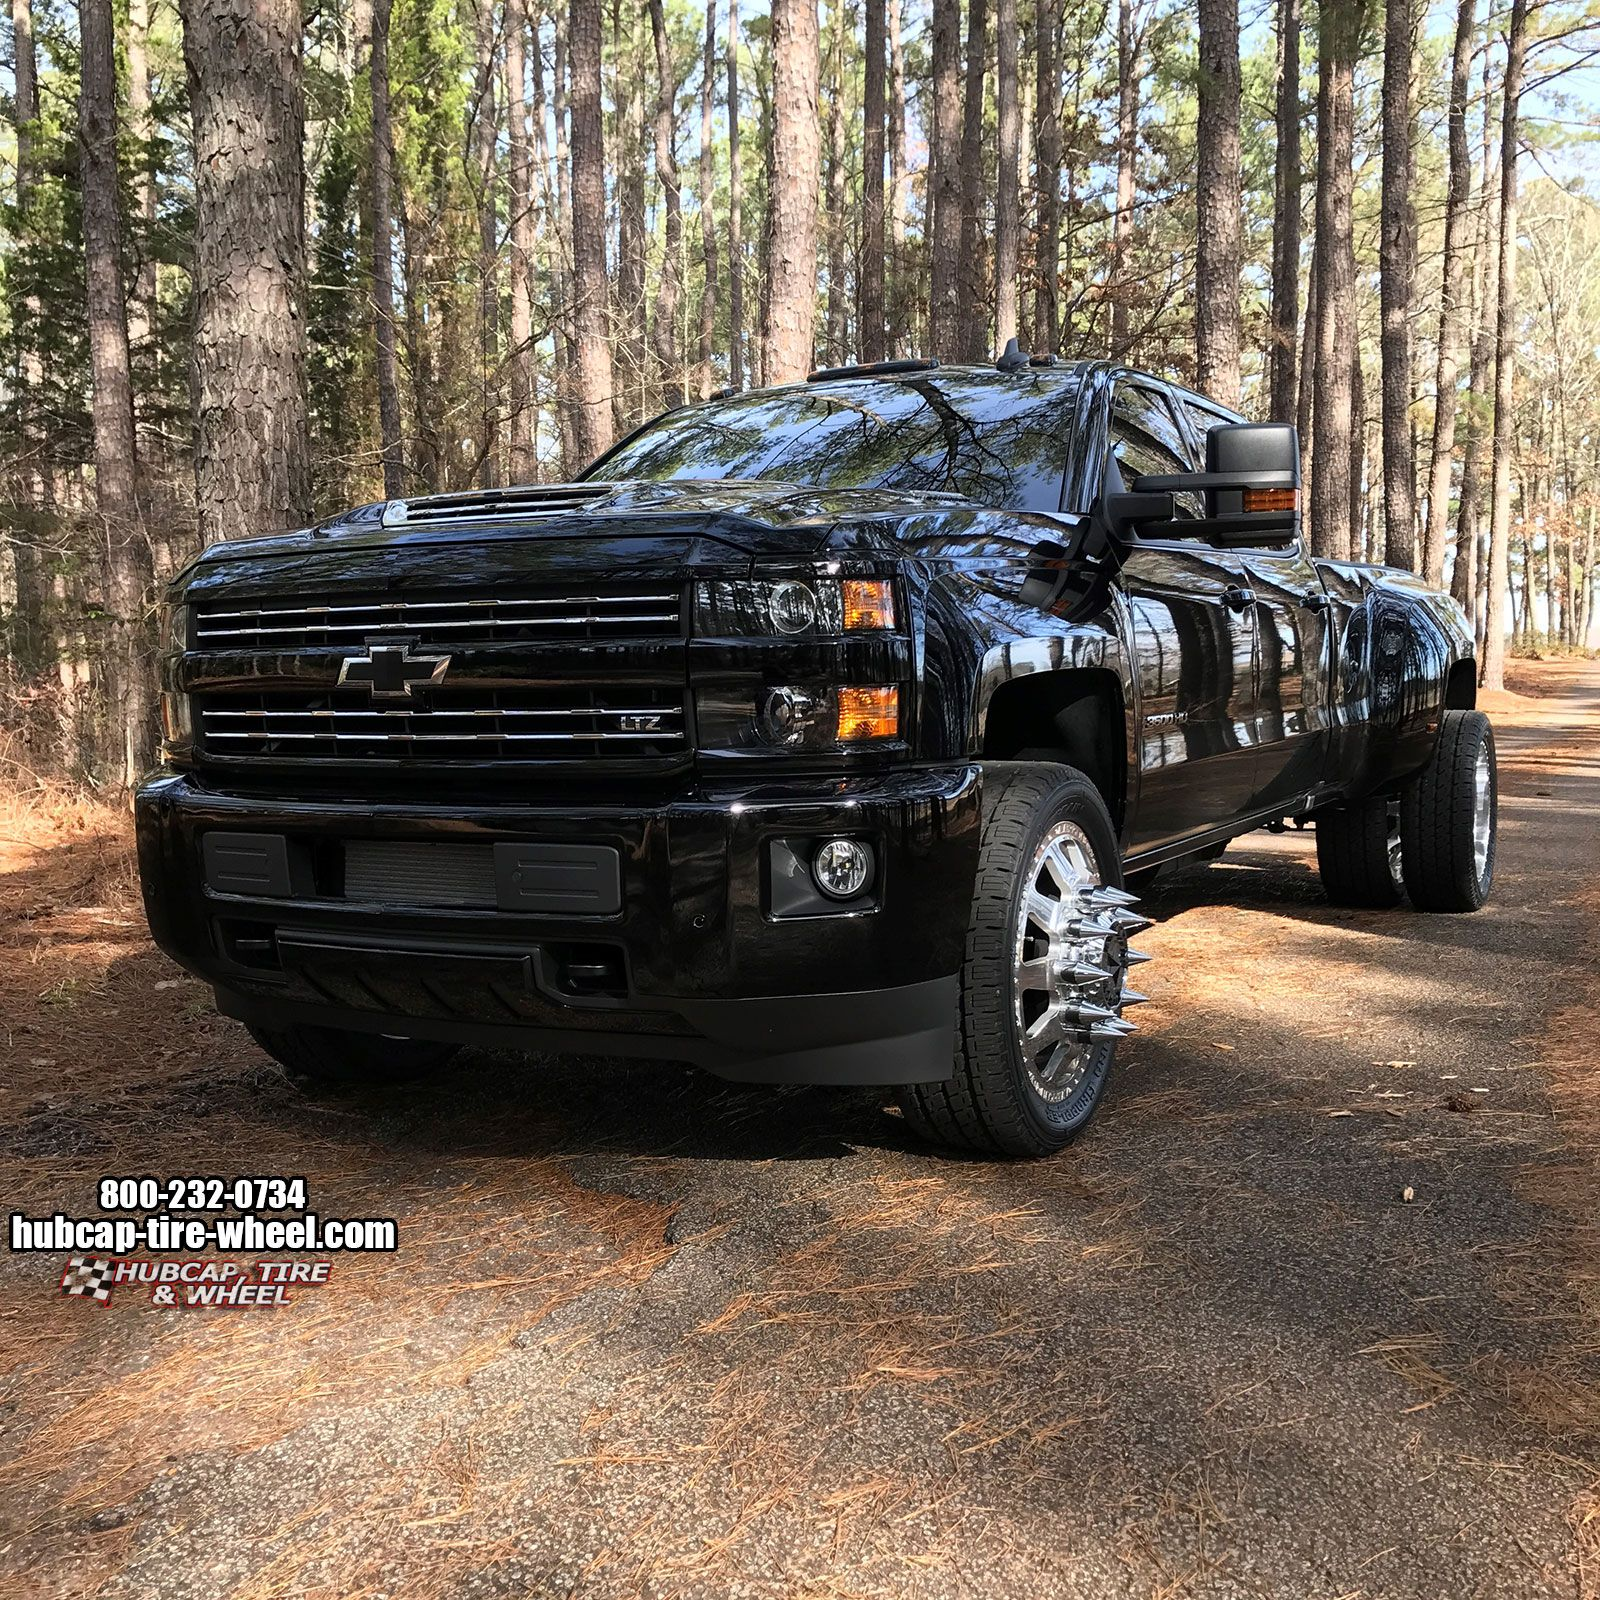 Buy American Force Dually Independence Wheels Rims Online 221 Trucks Chevy Trucks Chevy